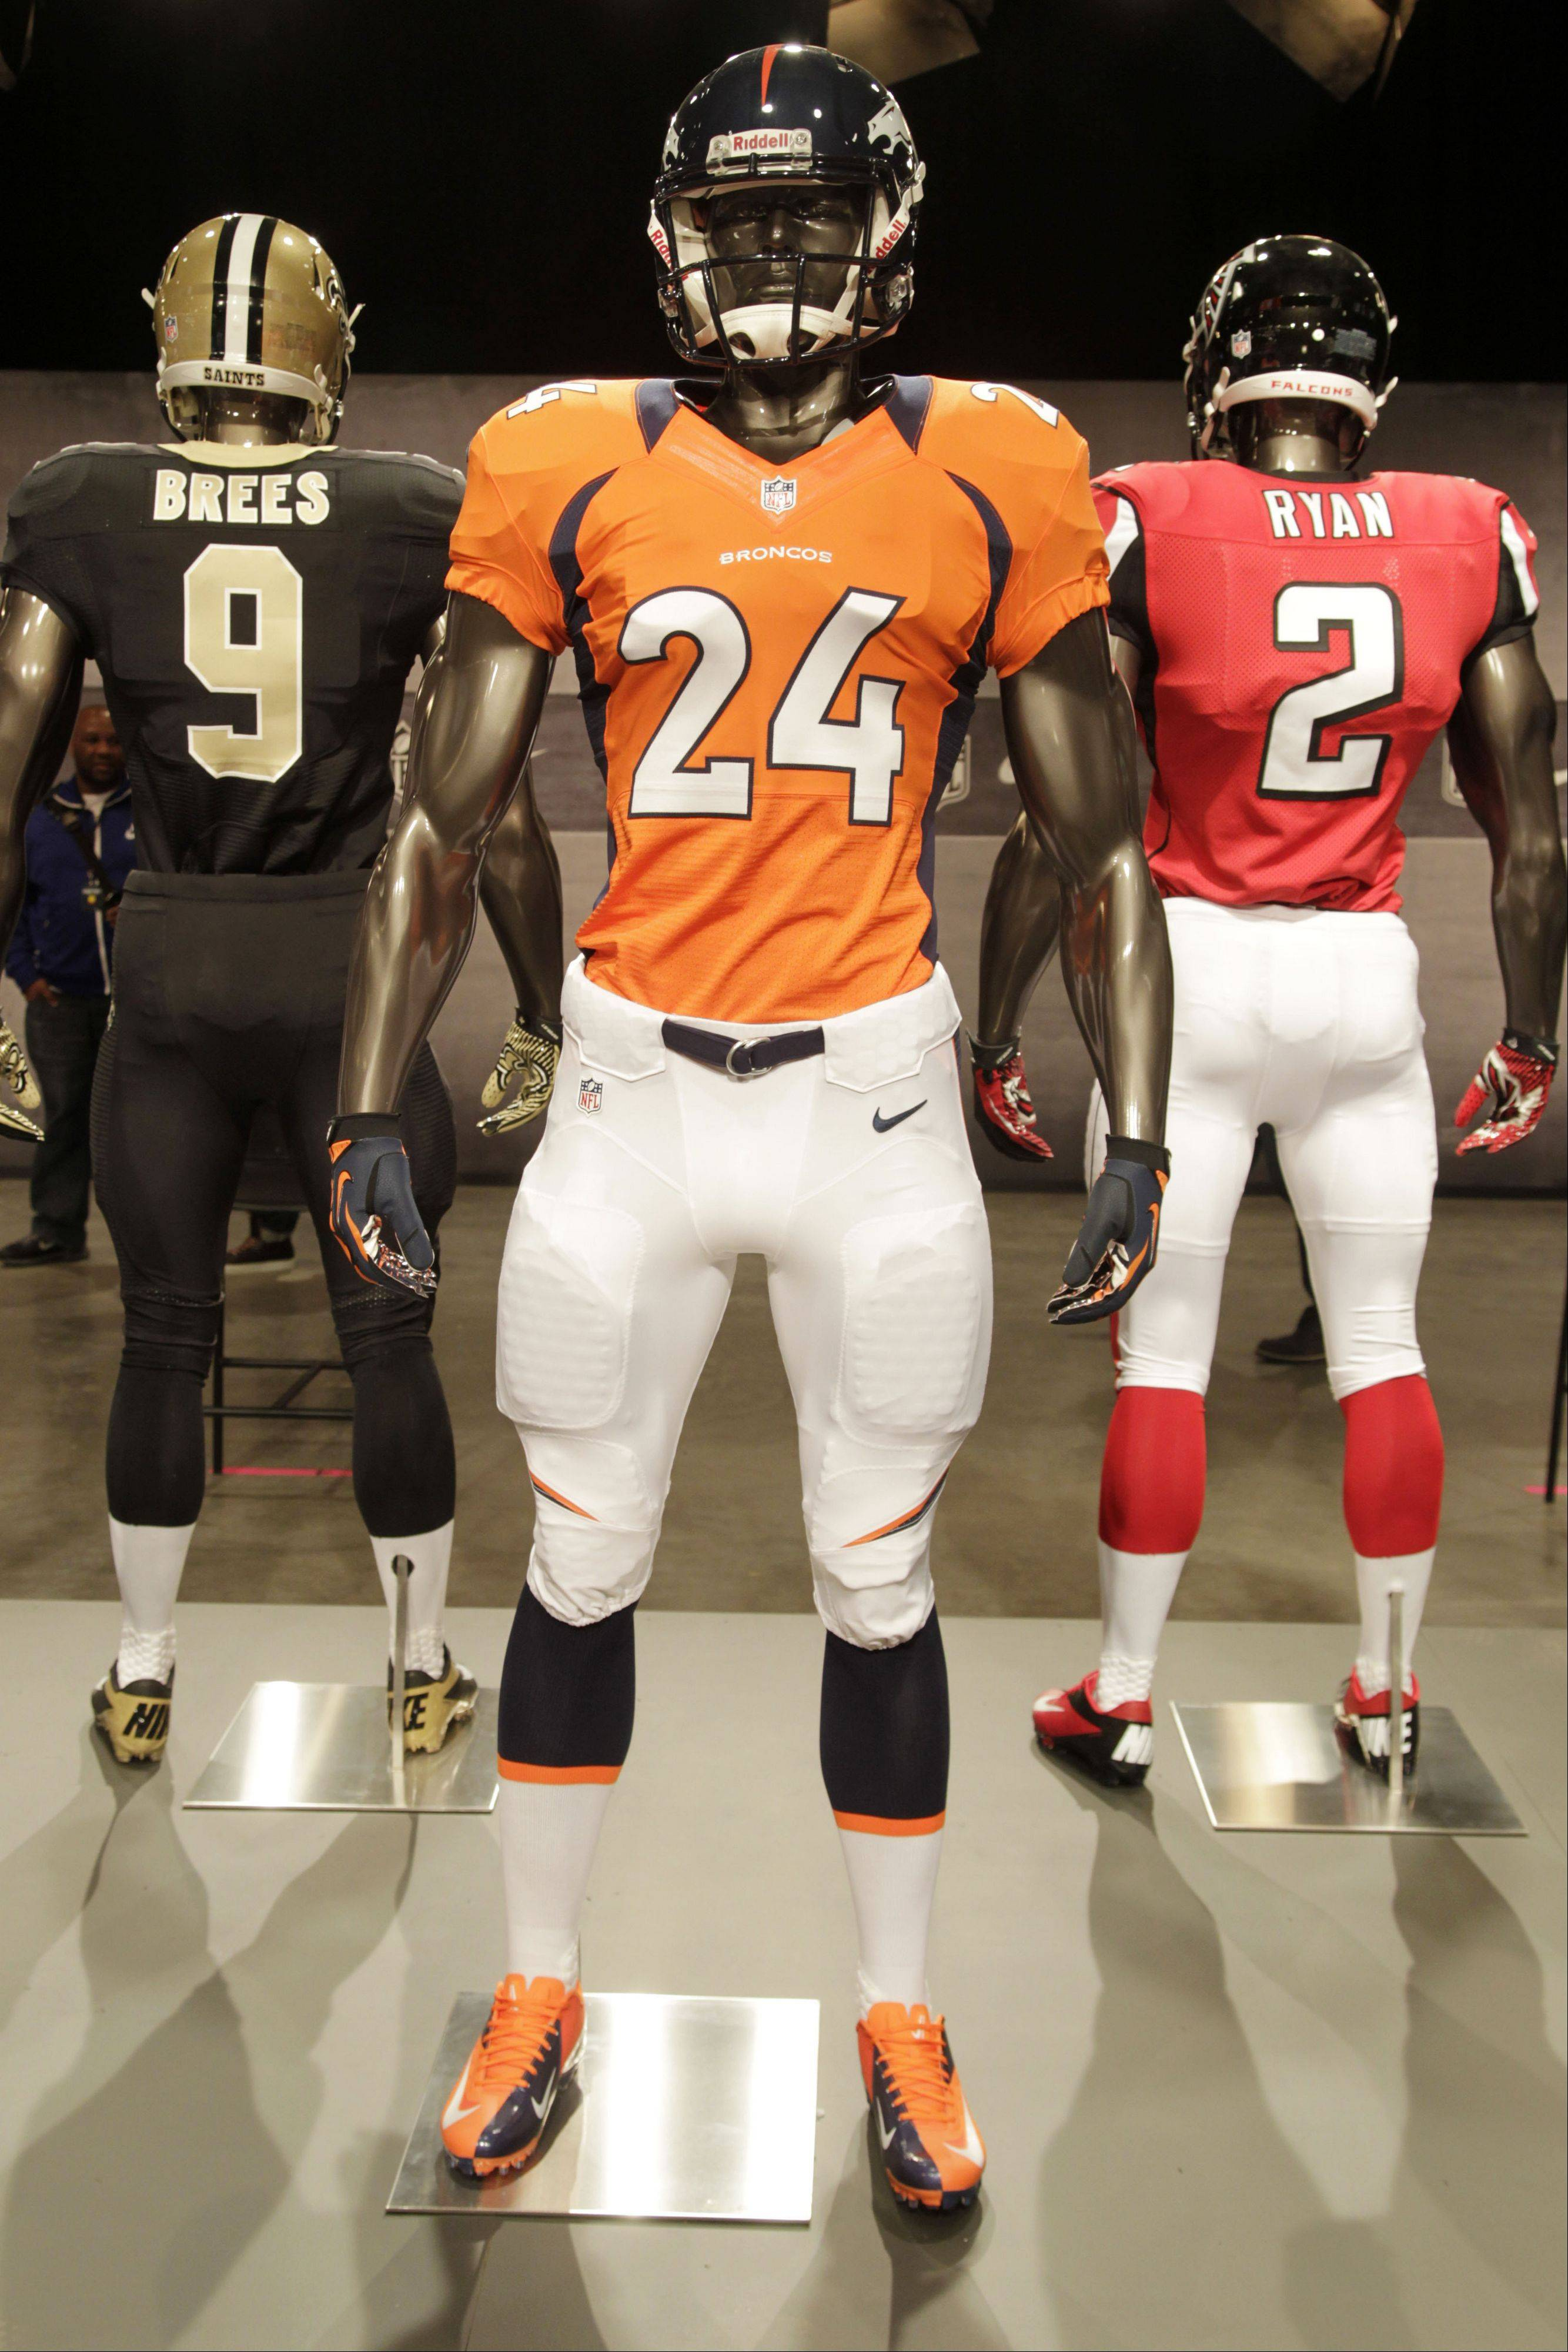 The new Denver Broncos uniform is displayed on a mannequin in New York, Tuesday, April 3, 2012. NFL has unveiled its new sleek uniforms designed by Nike. While most of the new uniforms are not very different visually, they all are made with new technology that make them lighter, dryer and more comfortable.